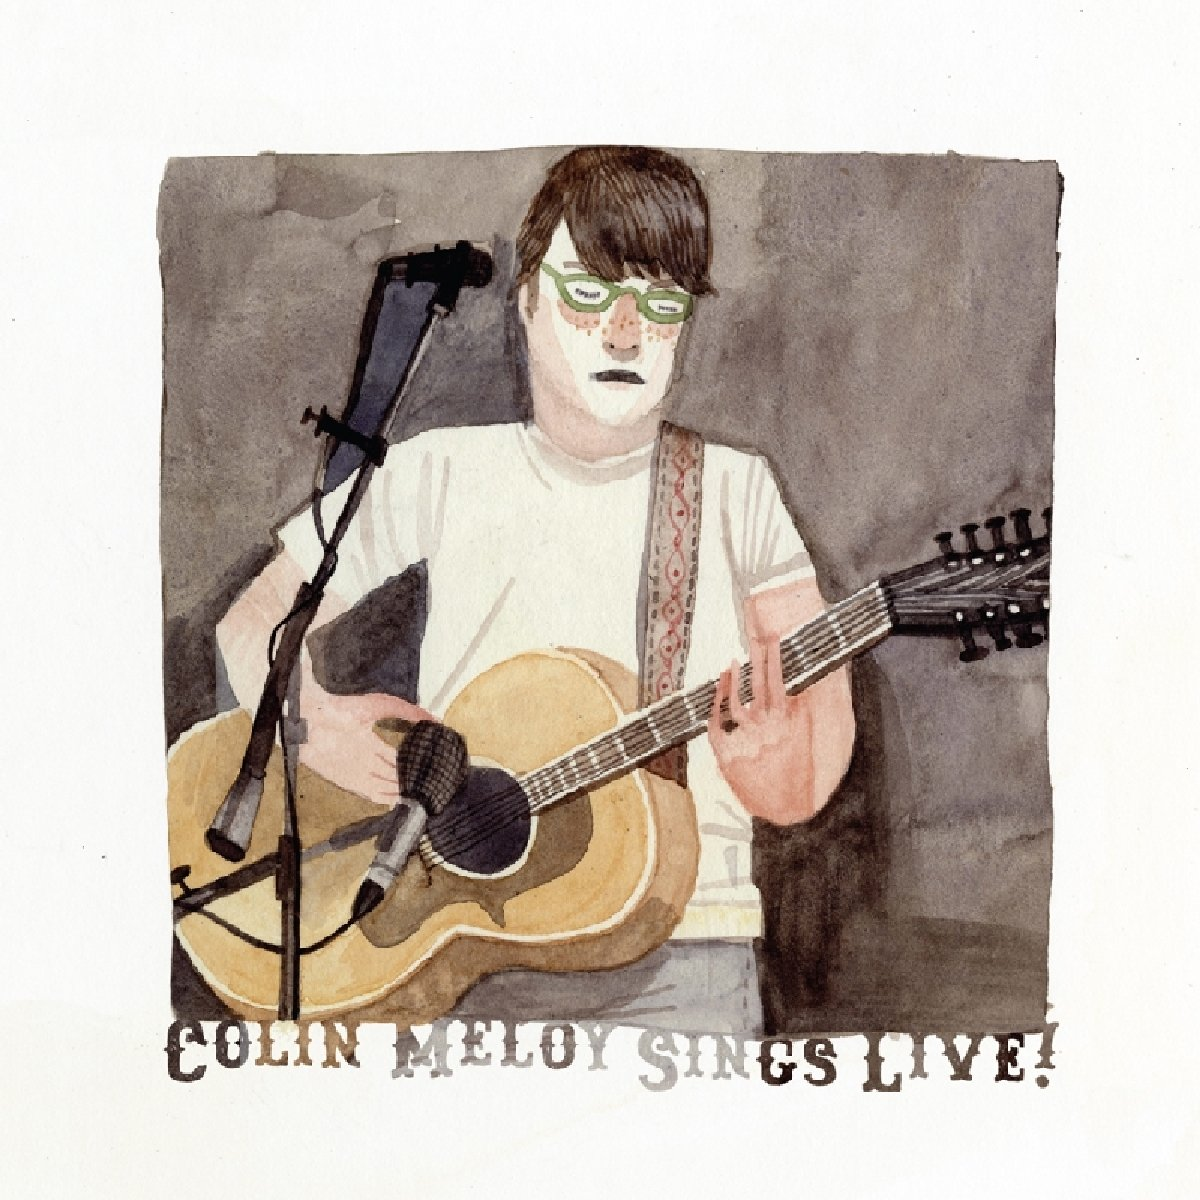 Colin Meloy Sings Live! by Kill Rock Stars